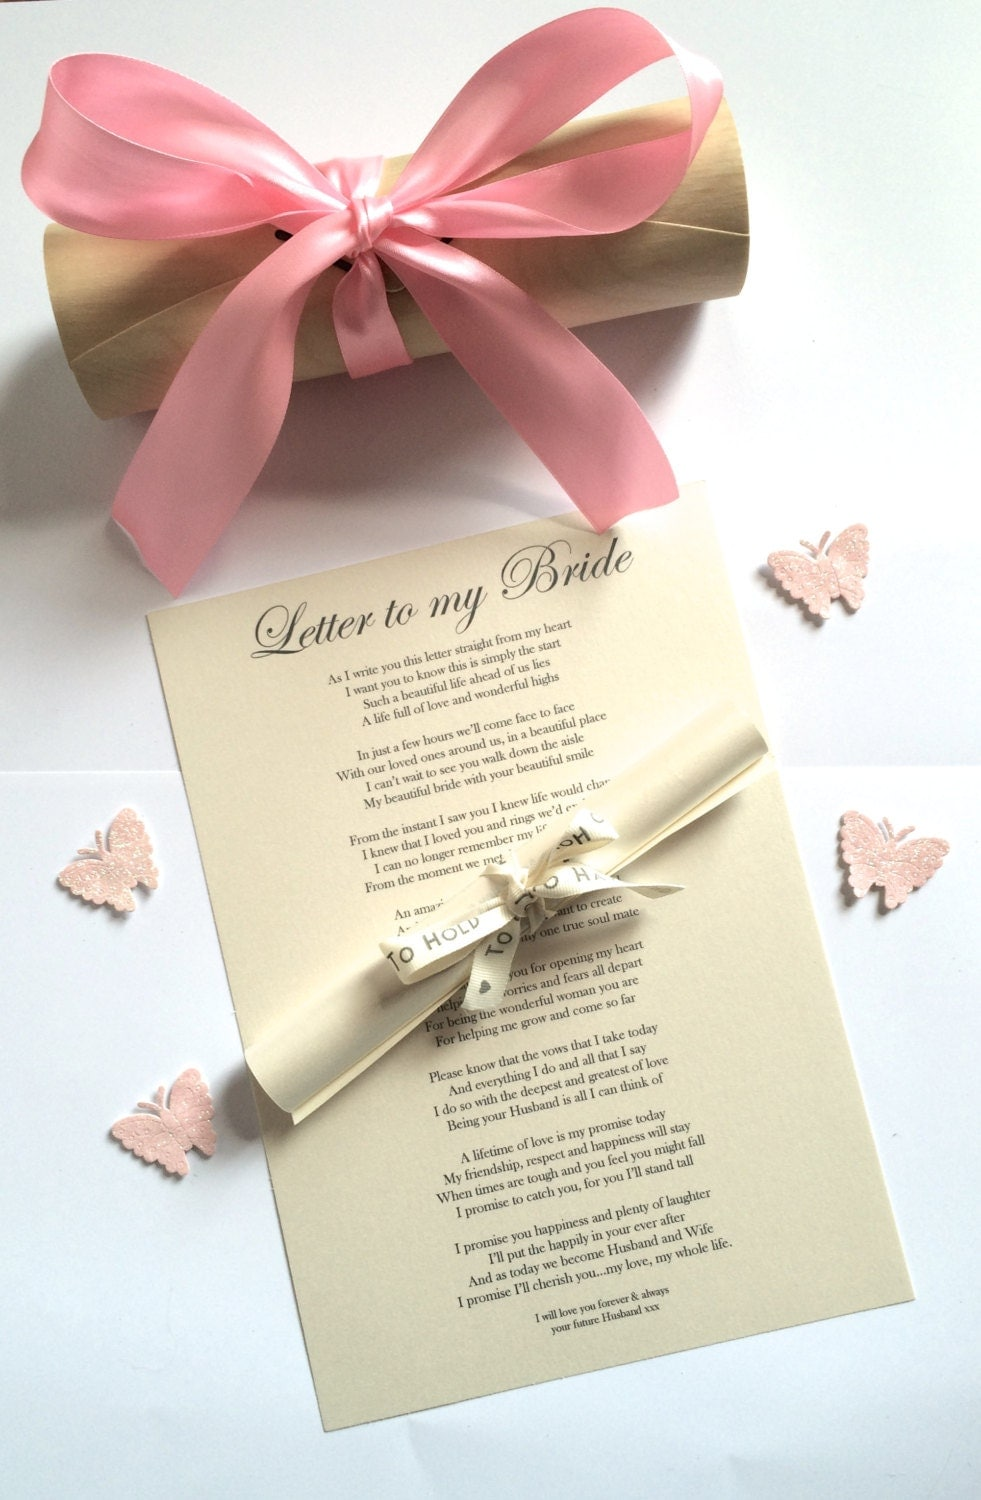 Wedding Gifts For Bride From Groom Uk : Wedding Gift for Bride from Groom on Wedding Day Personalised